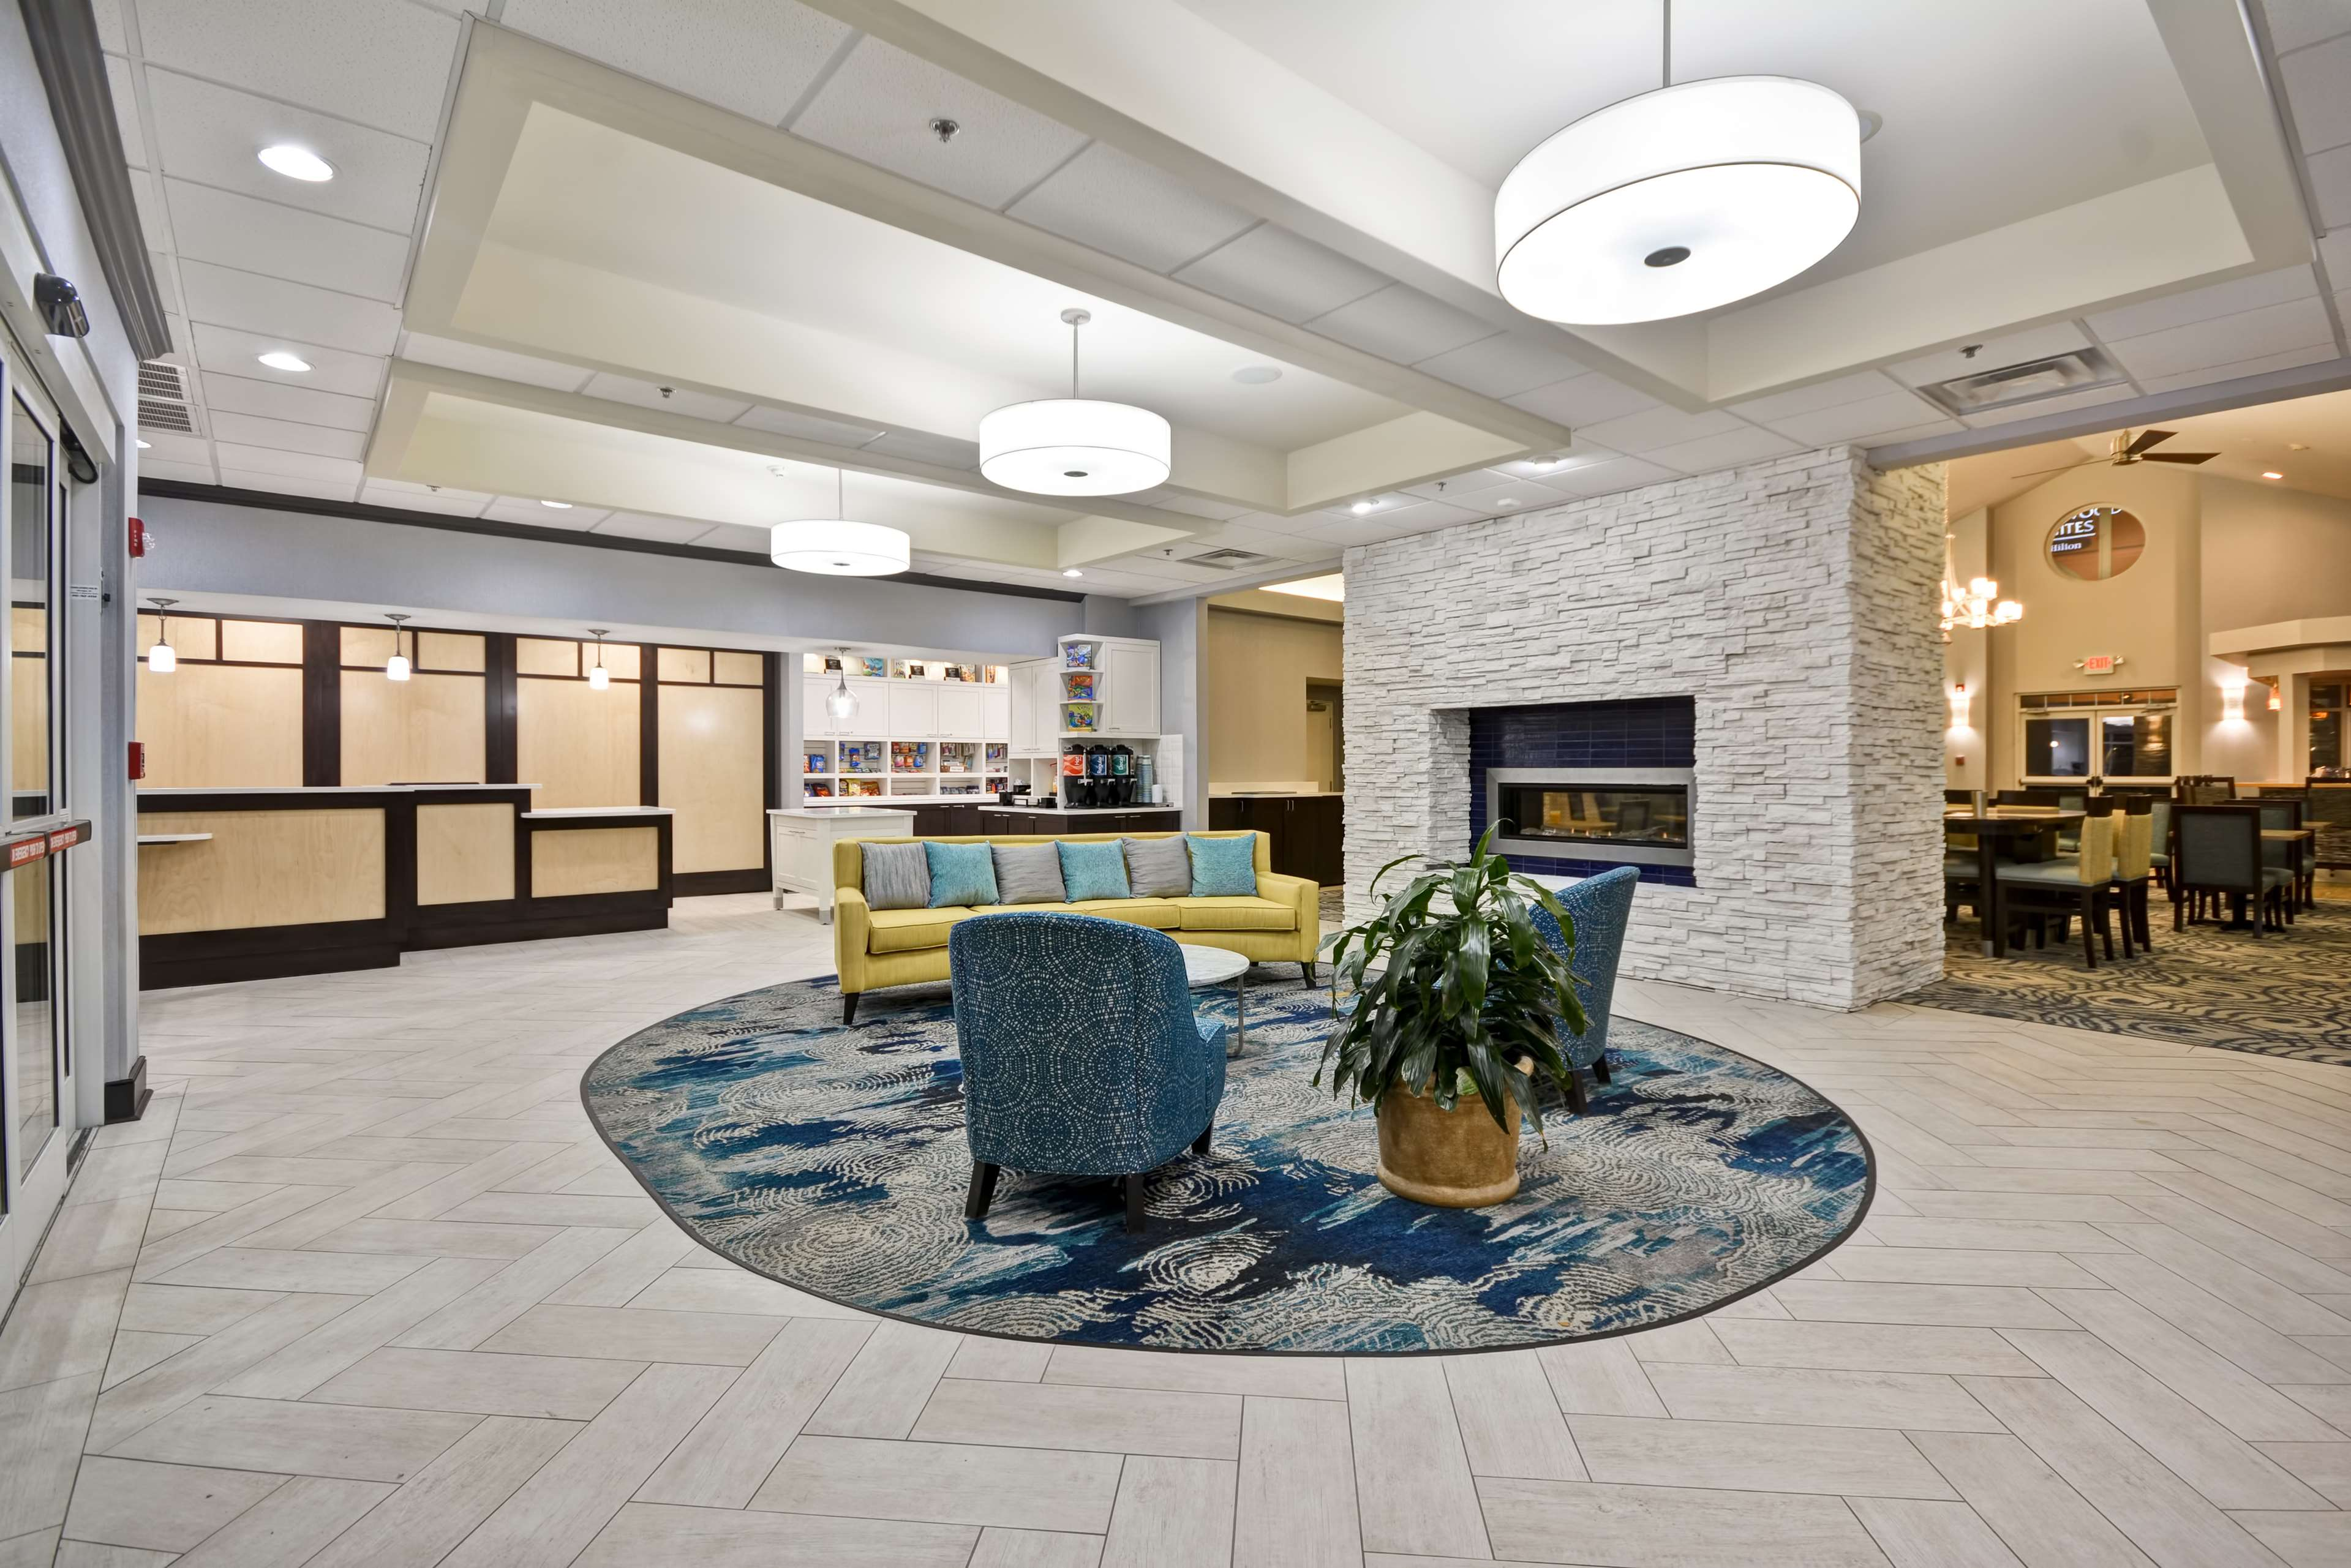 Homewood Suites by Hilton Wilmington/Mayfaire, NC image 2